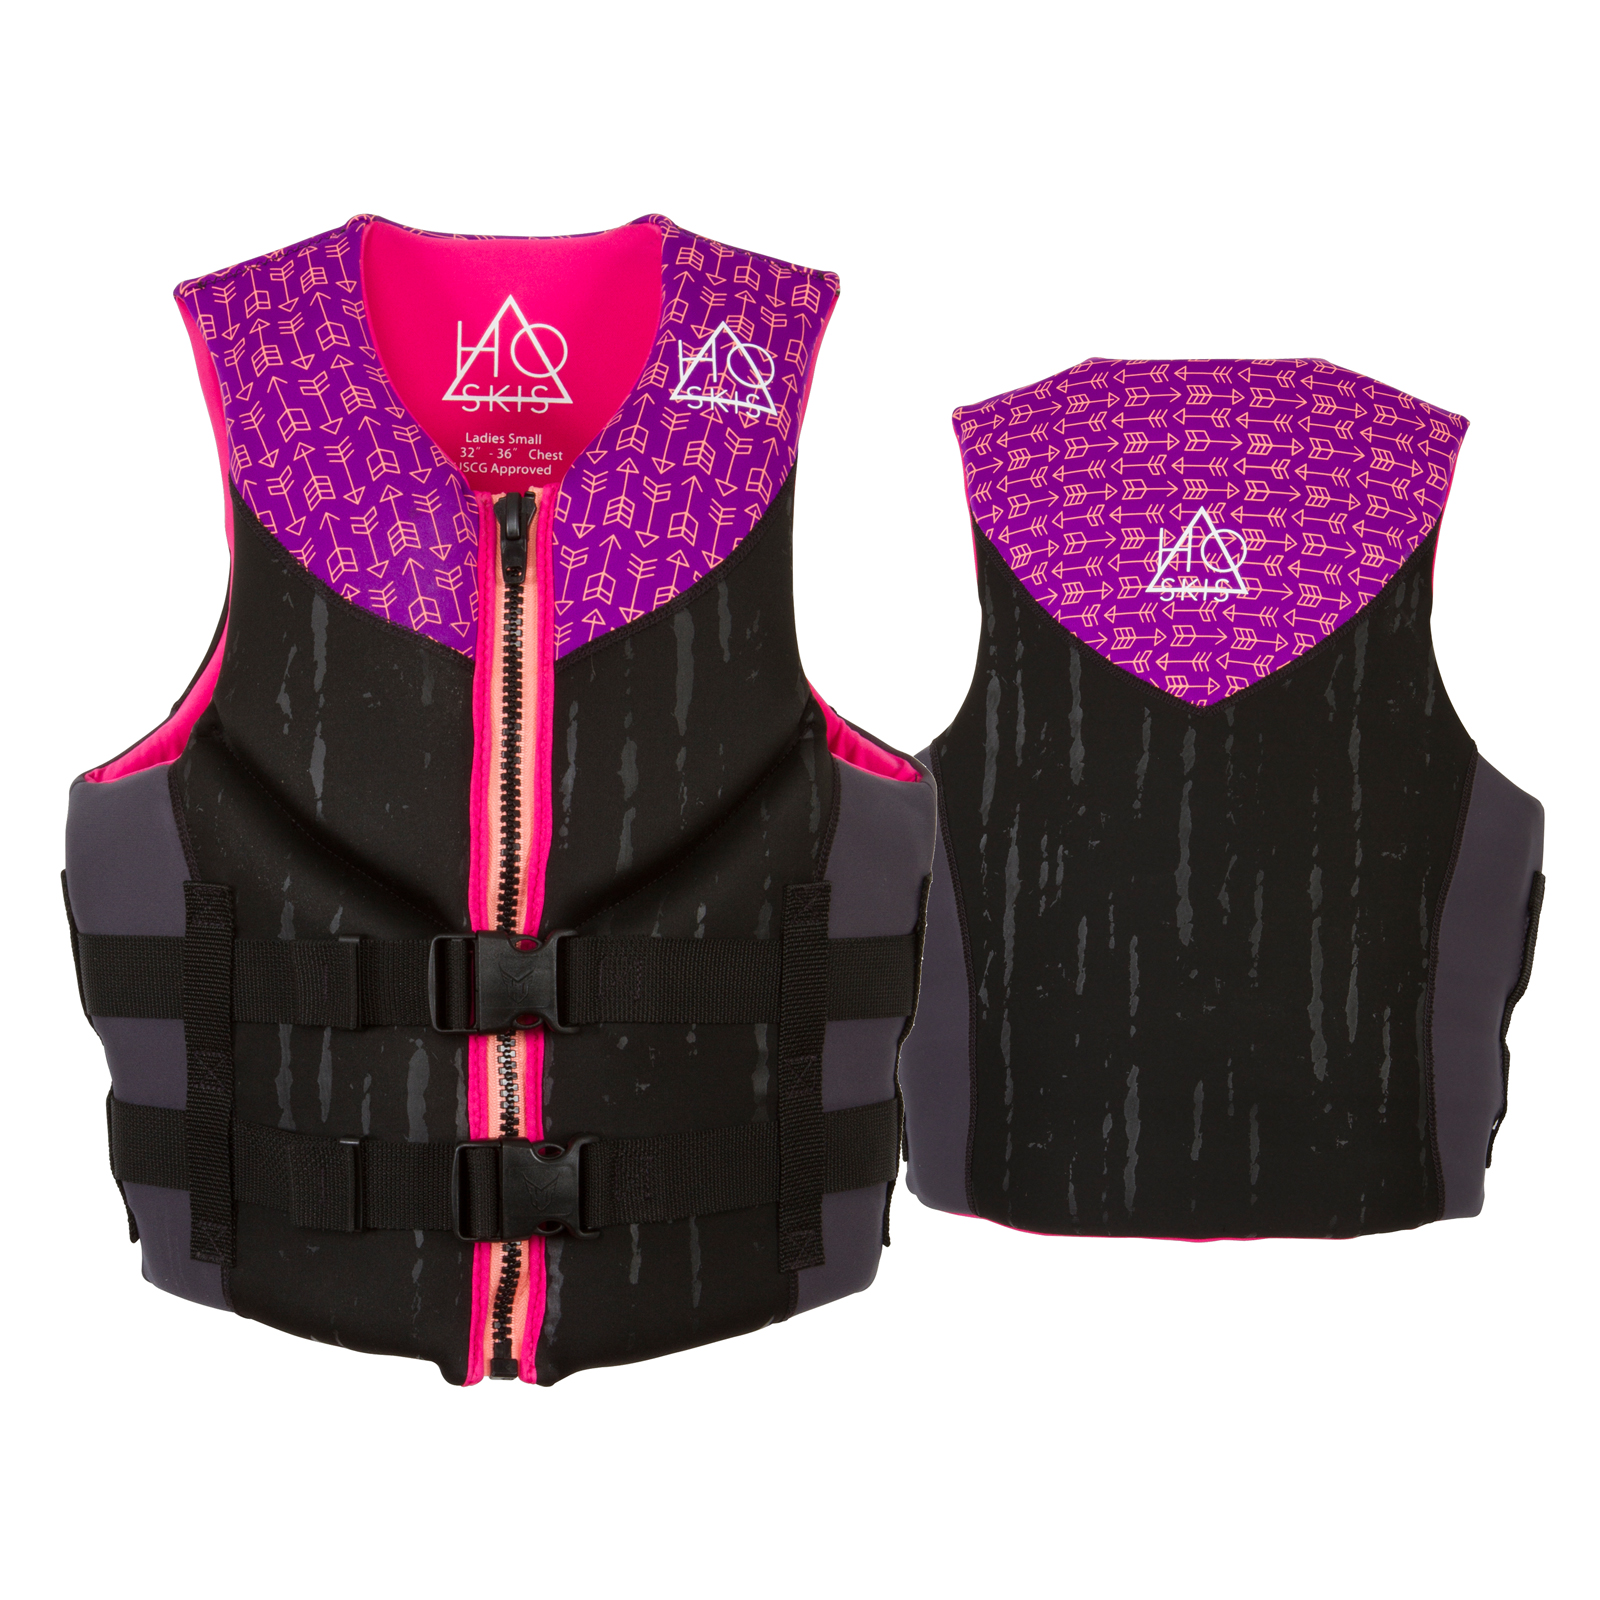 PURSUIT WOMEN'S NEO LIFE VEST HO SPORTS 2018